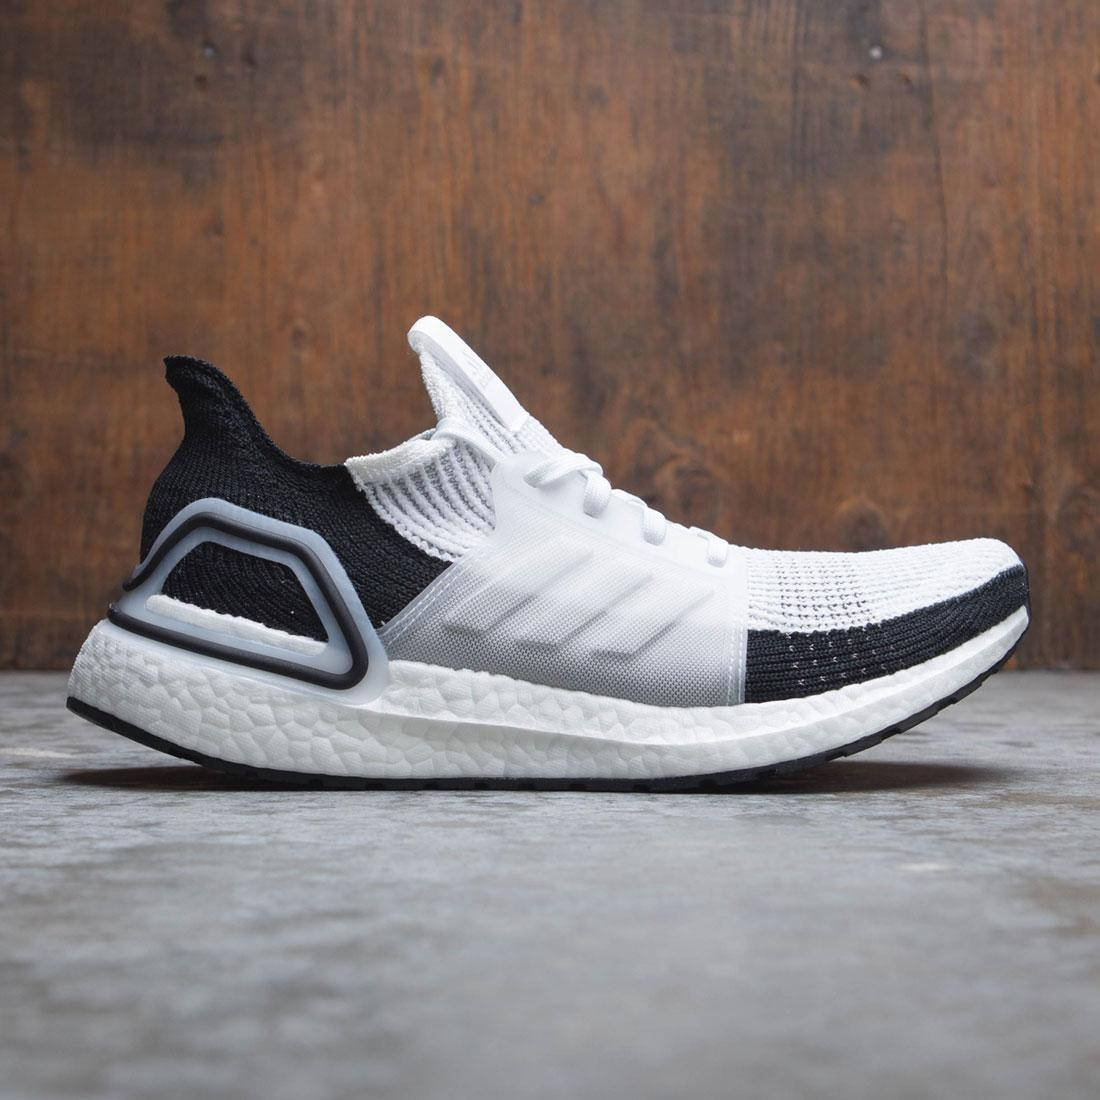 Adidas Men UltraBOOST 19 (white / footwear white / grey two)